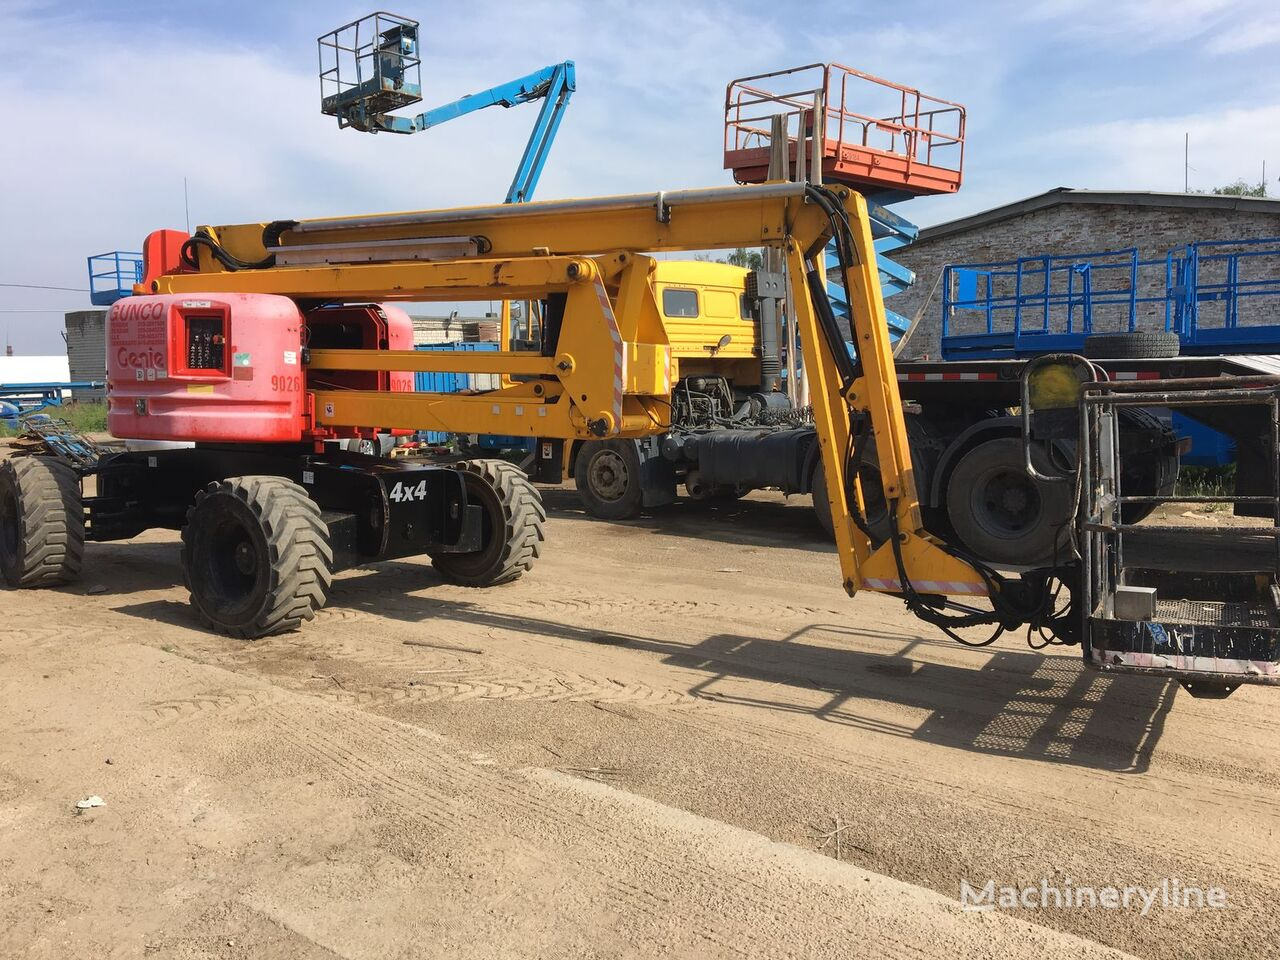 GENIE Z60/34 RT 4*4 articulated boom lift